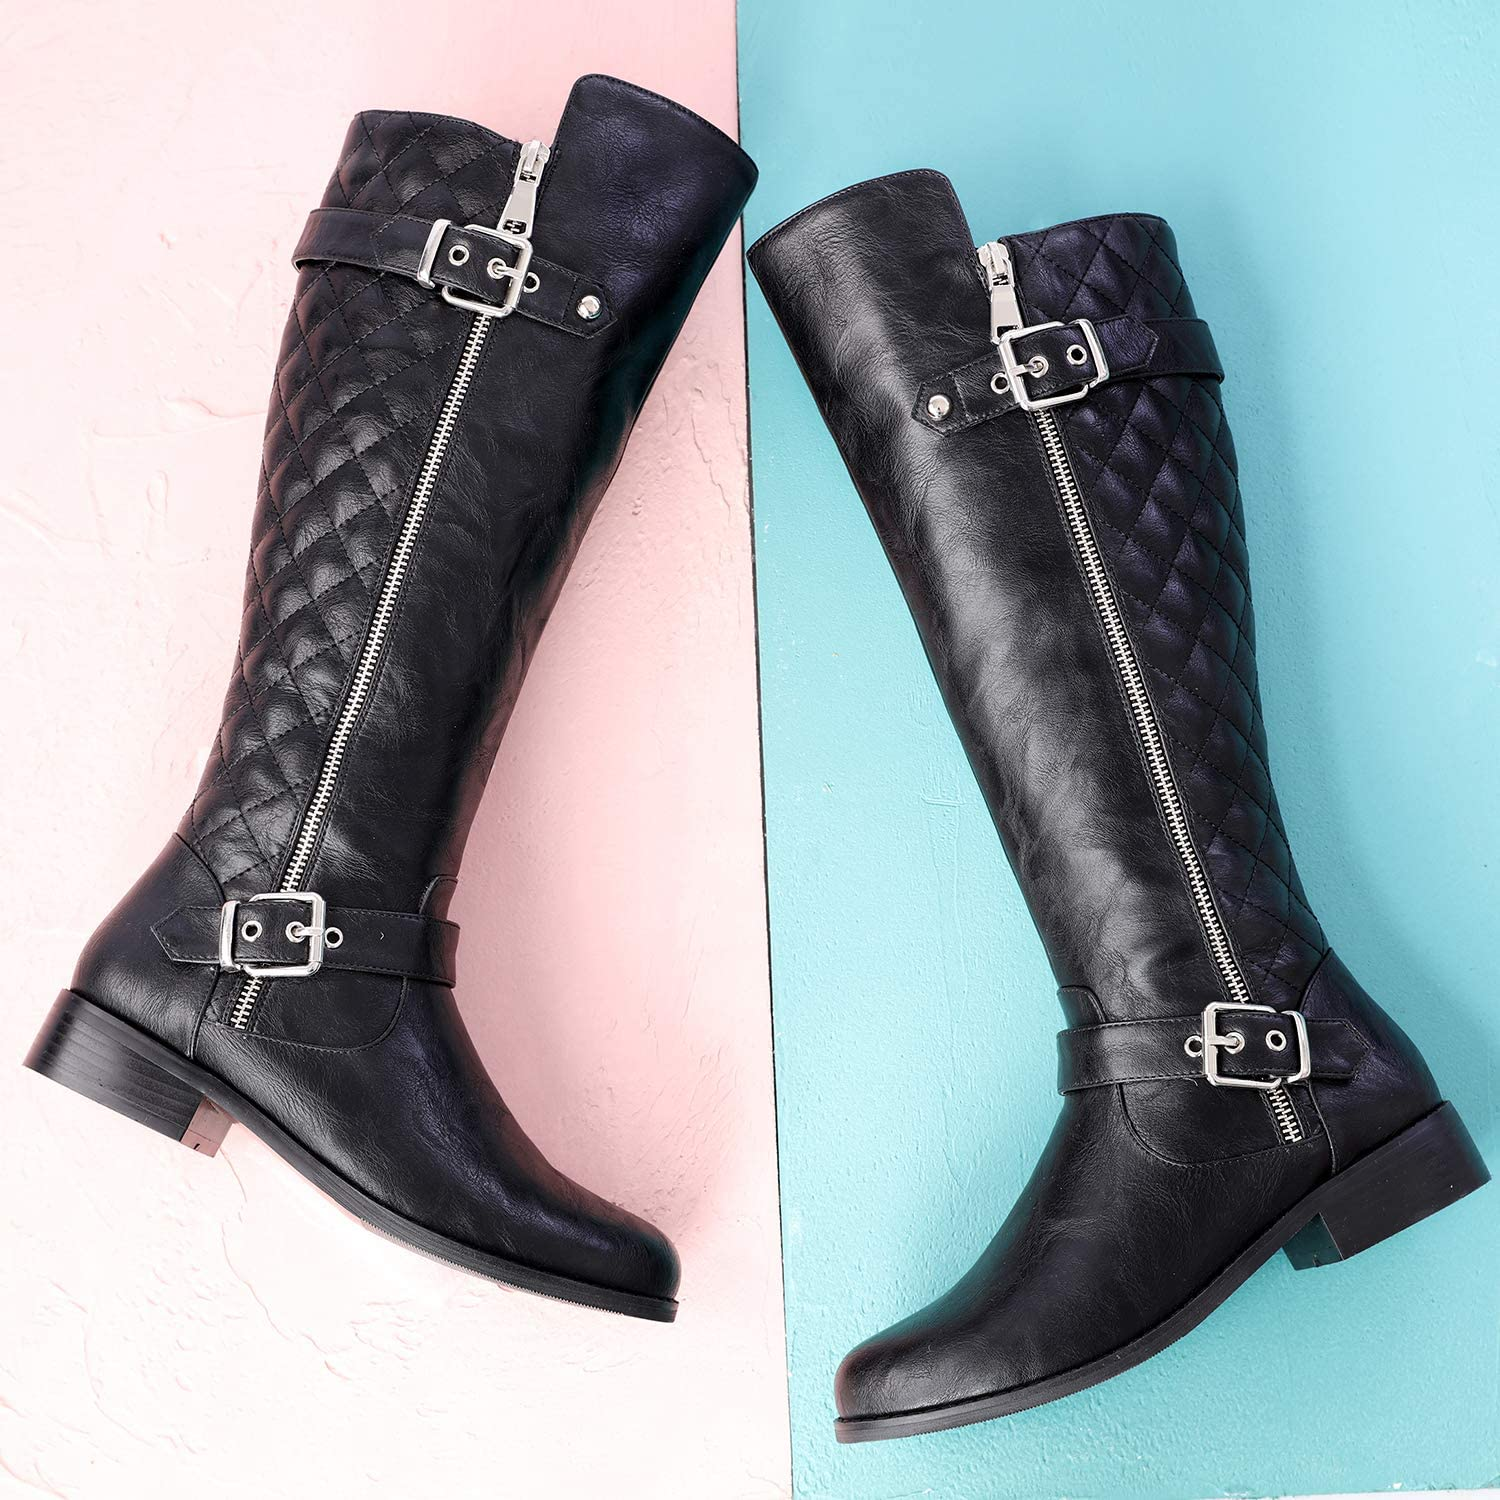 Odema Womens Knee High Riding Boots Wide Calf Plush-Lined Buckle Zip Low Heel Warm Boots Size 6-10.5